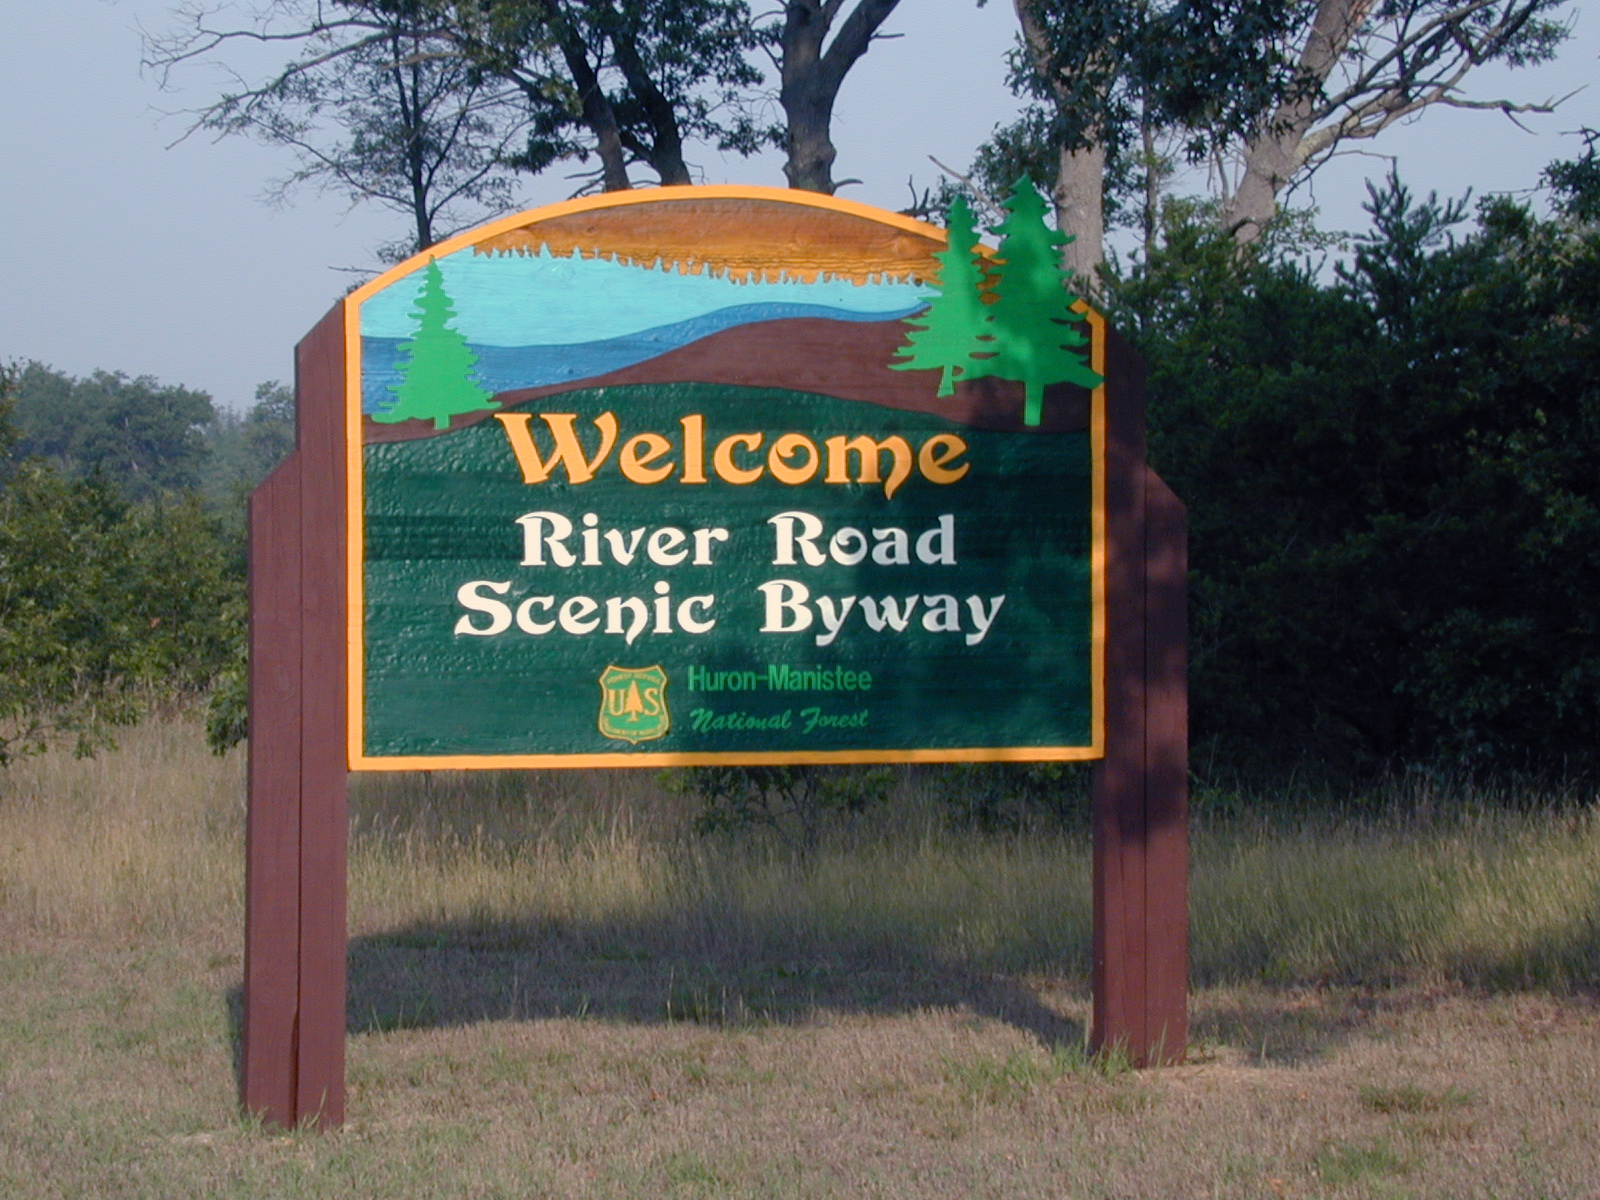 Sign for the River Road National Scenic Byway.